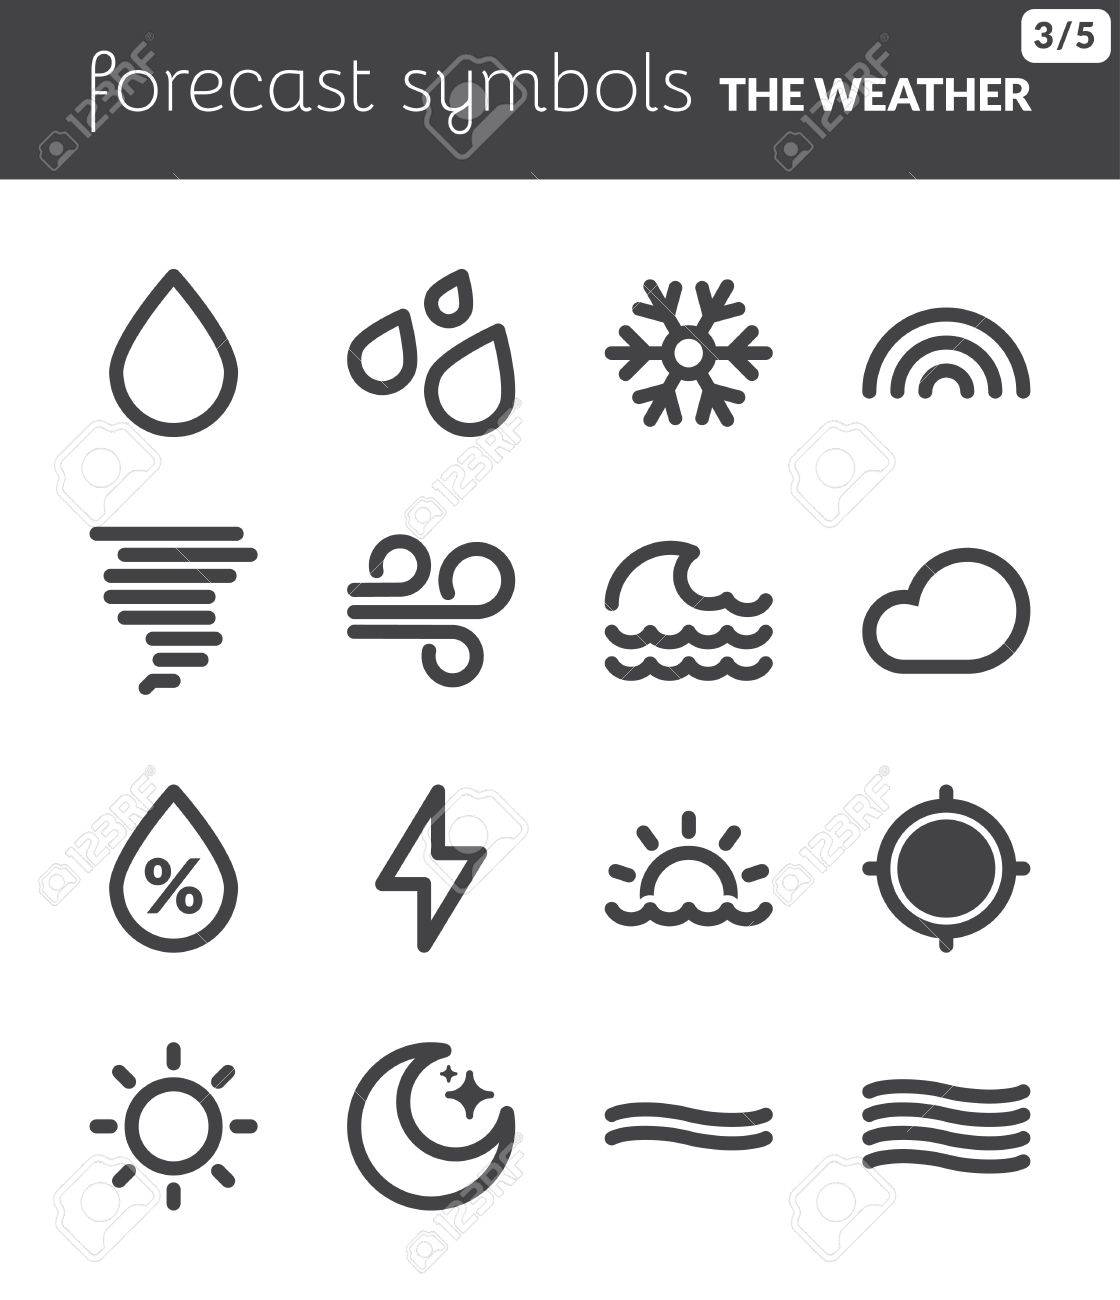 Black Icons About The Weather Forecast Symbols 1 Royalty Free